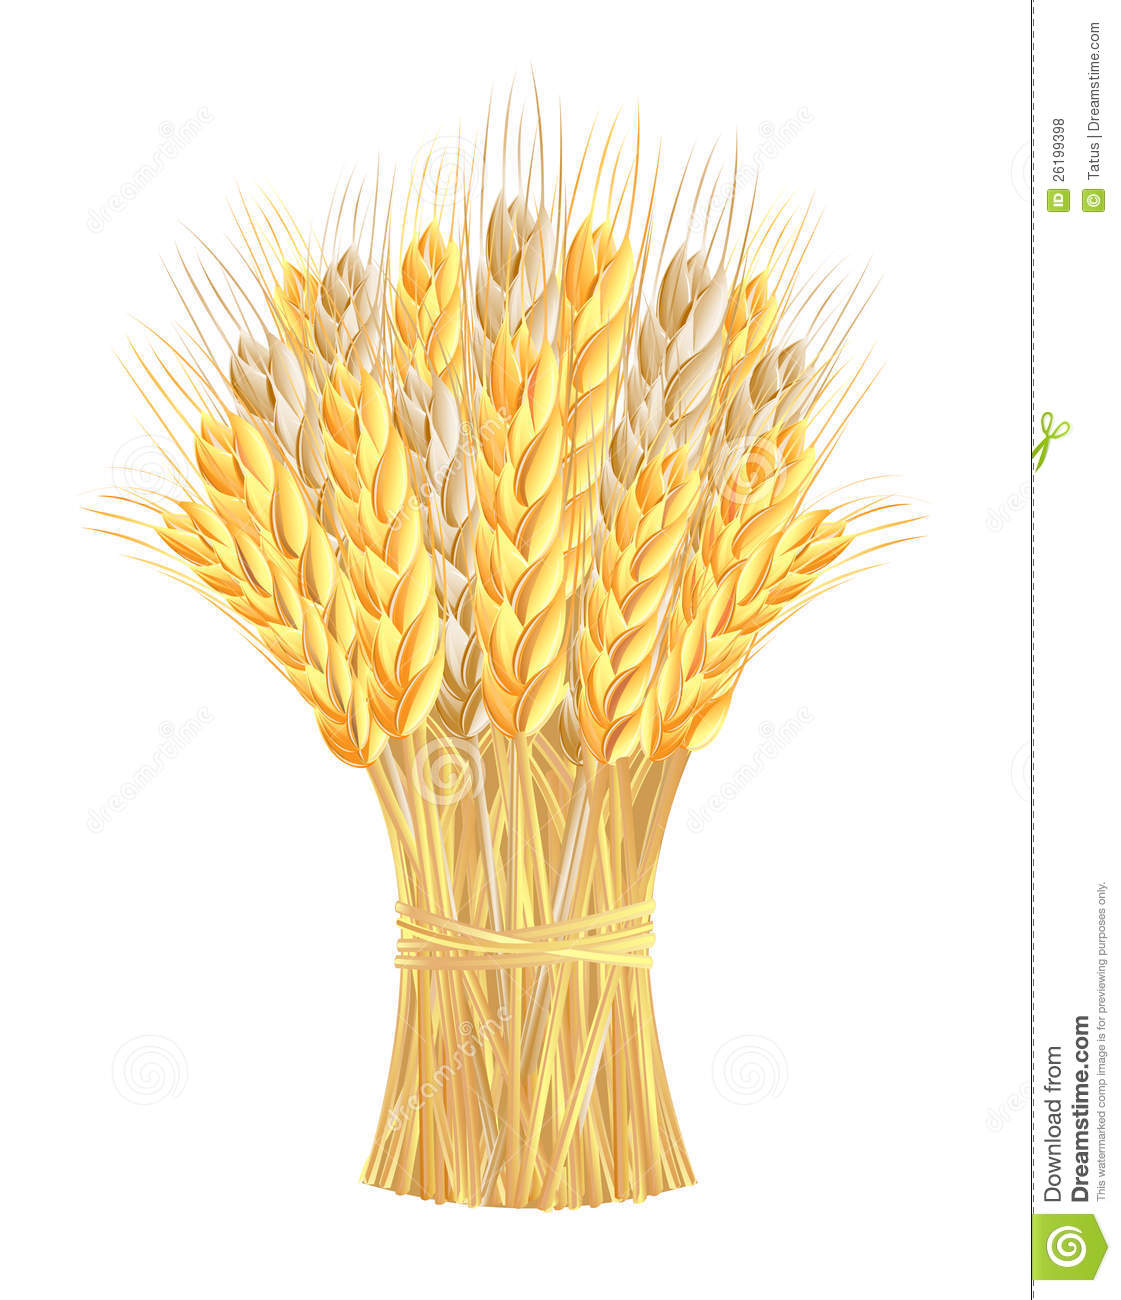 Wheat Bundle Clipart Sheaf Of Wheat Ears Royalty